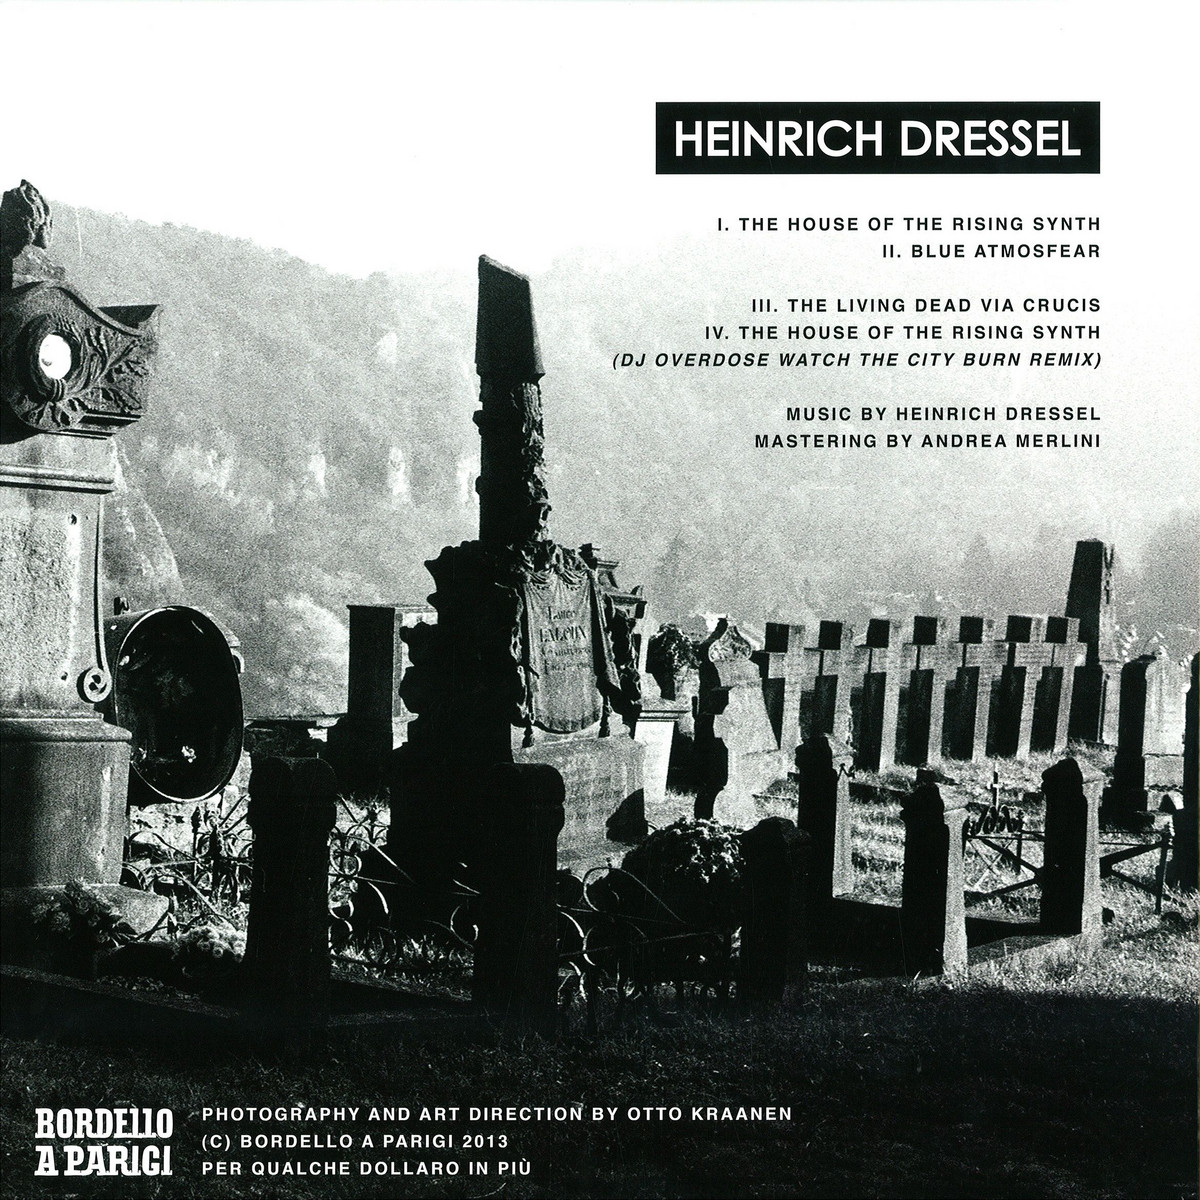 Heinrich Dressel - The House Of The Rising Synth / Bordello